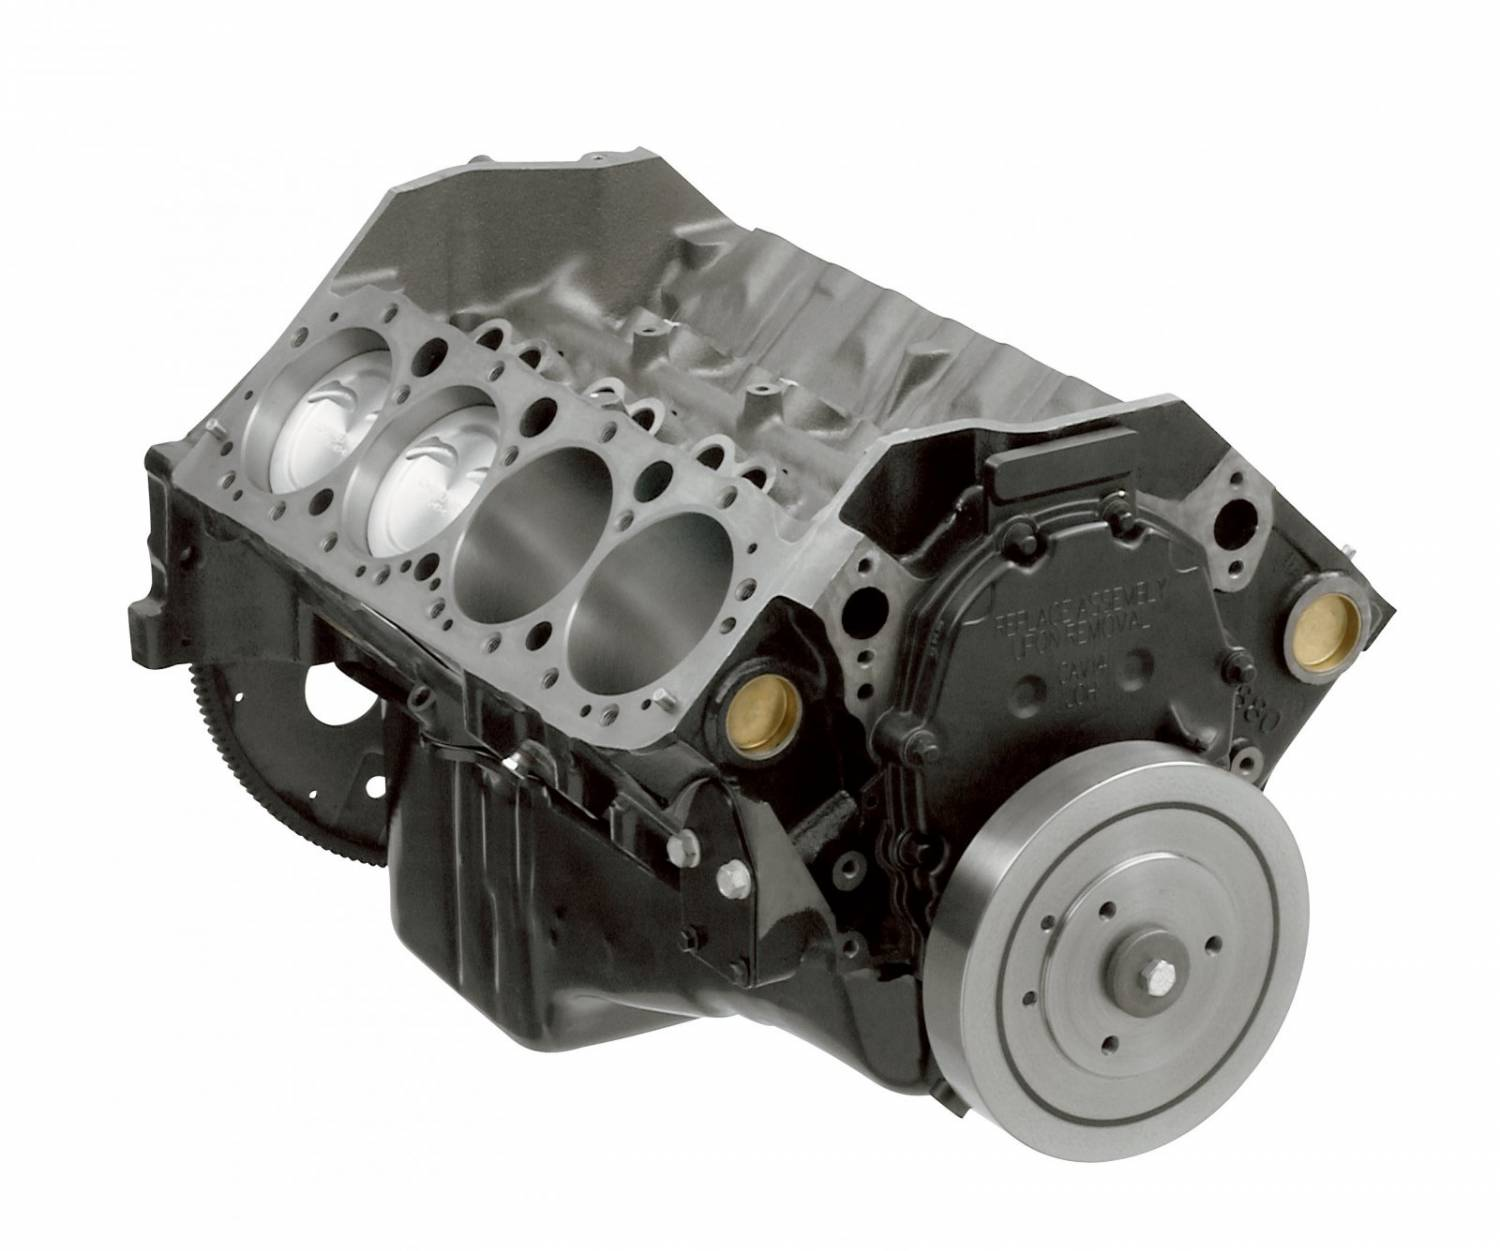 Chevrolet Performance Parts 19418654 Chevy 383cid Short Block Assembly